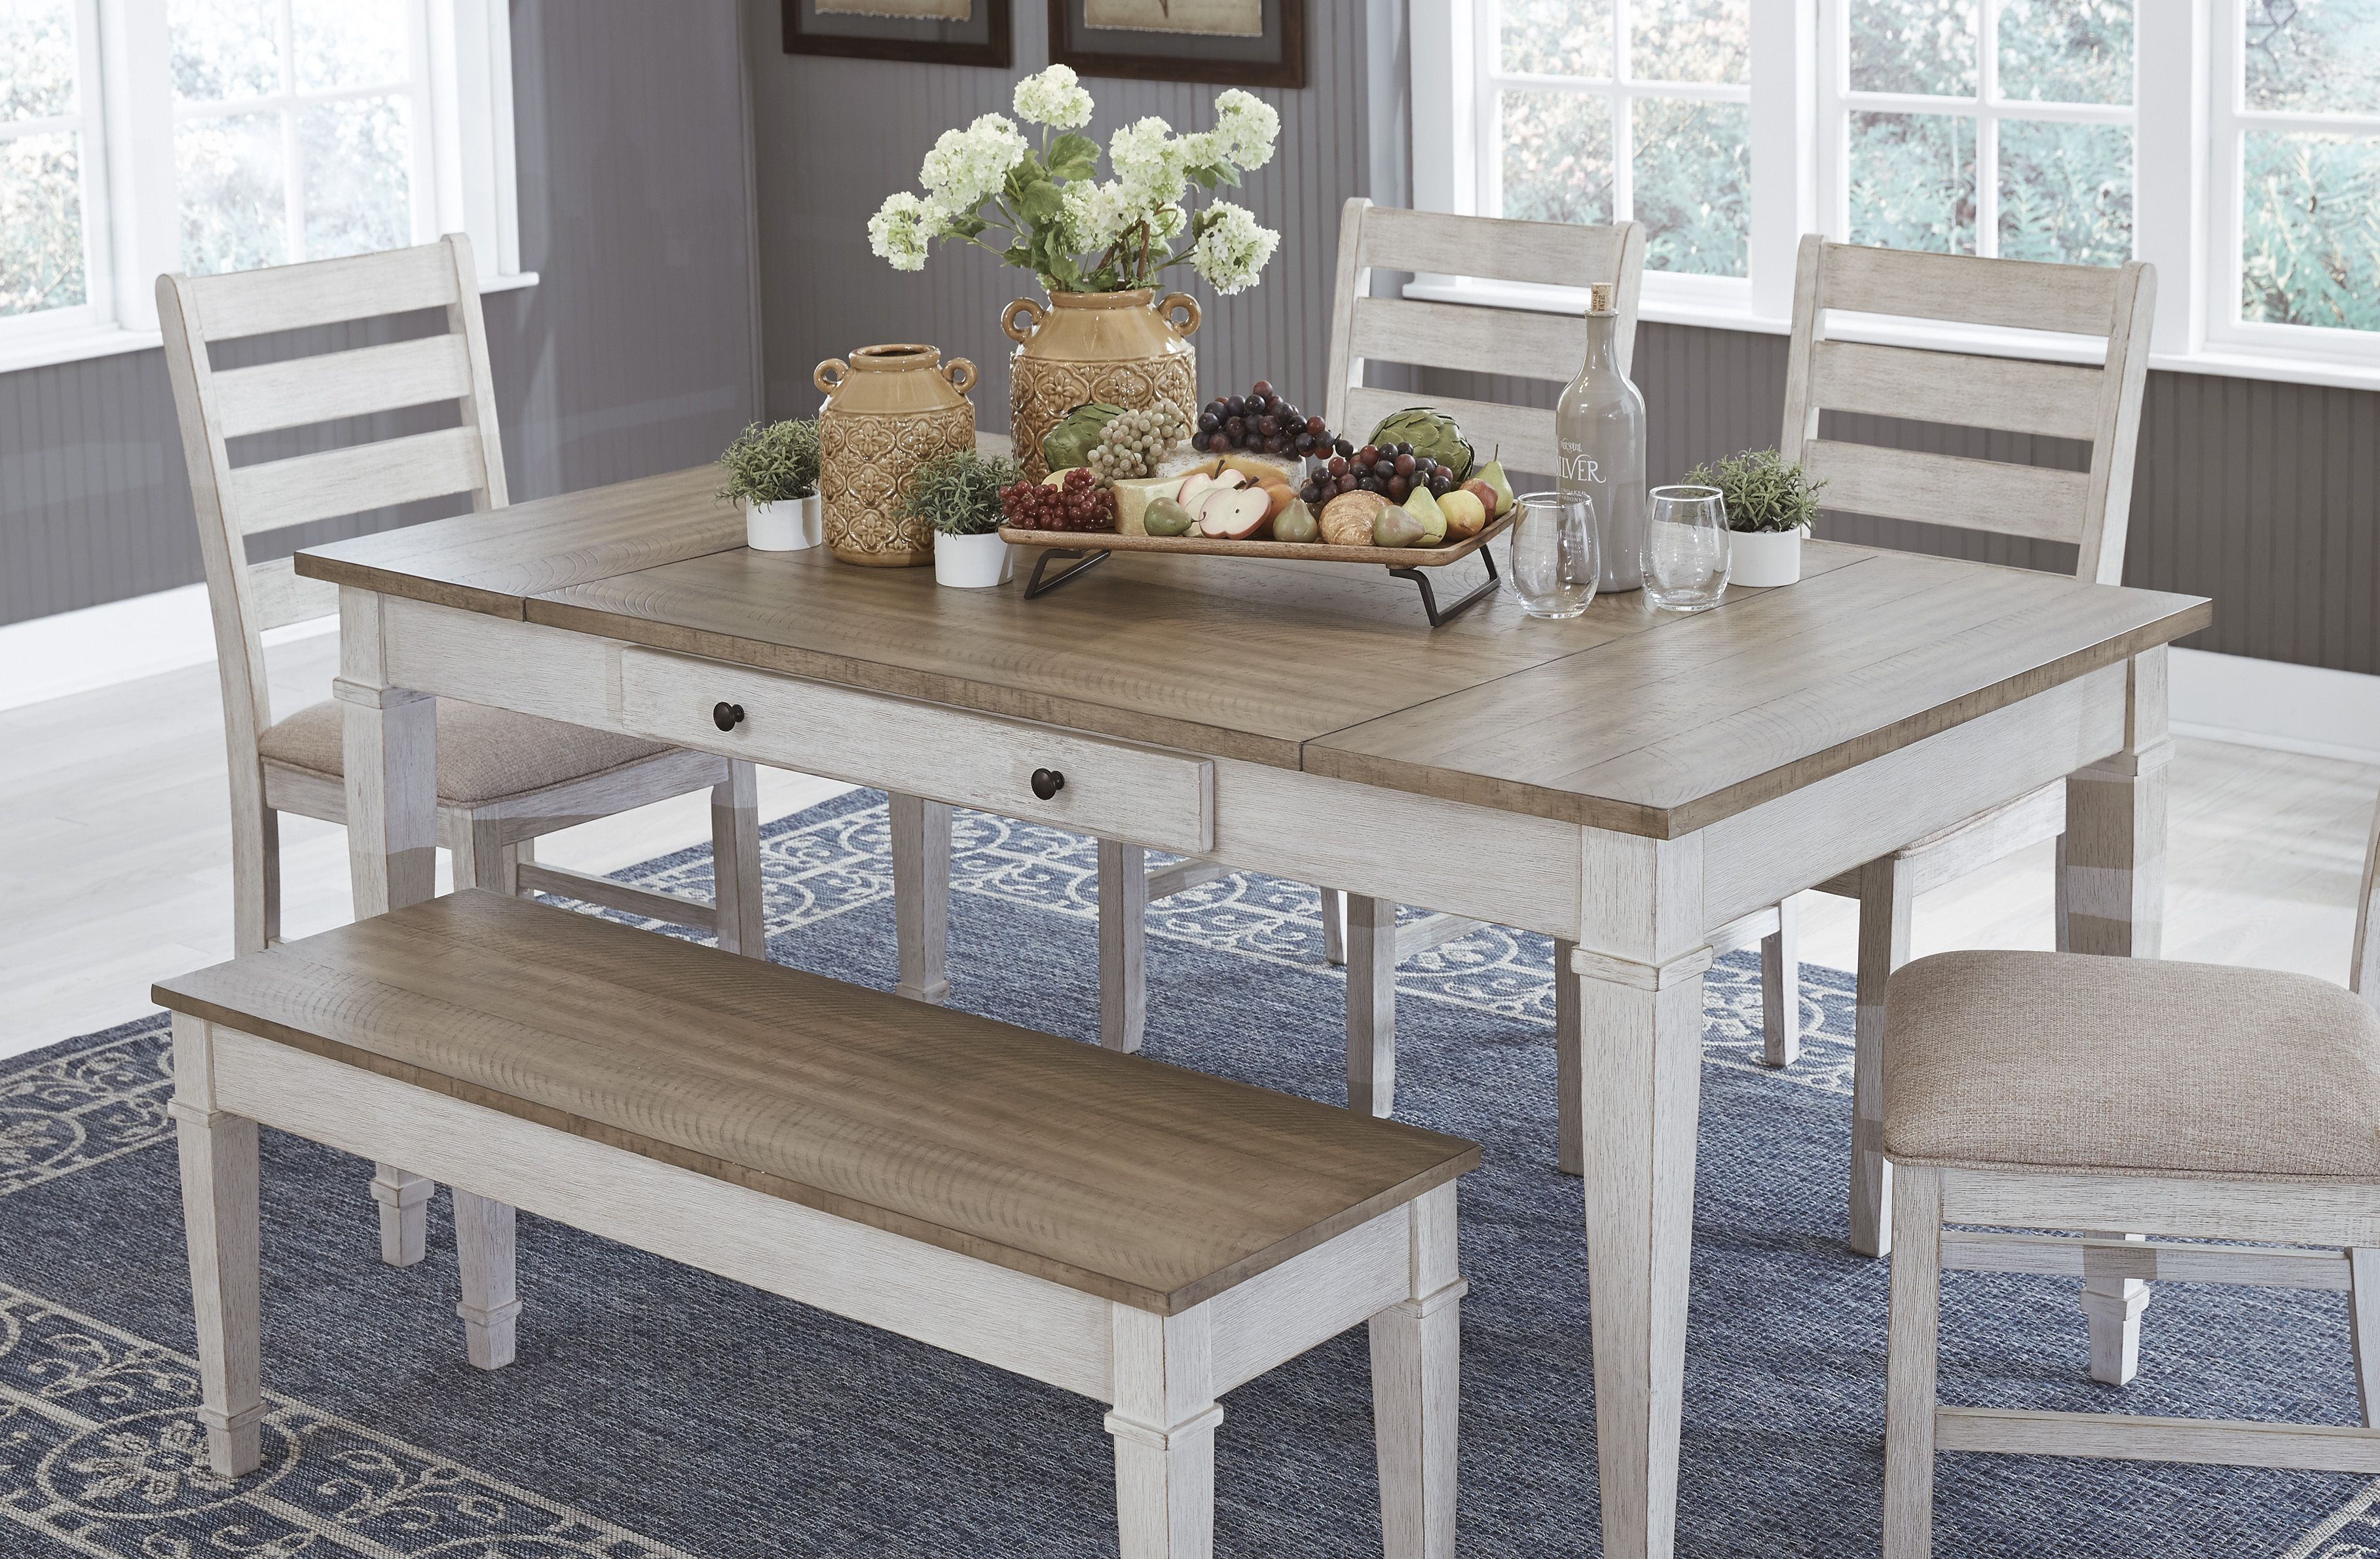 Set The Scene For Coastal Chic Or Modern Farmhouse Living With The